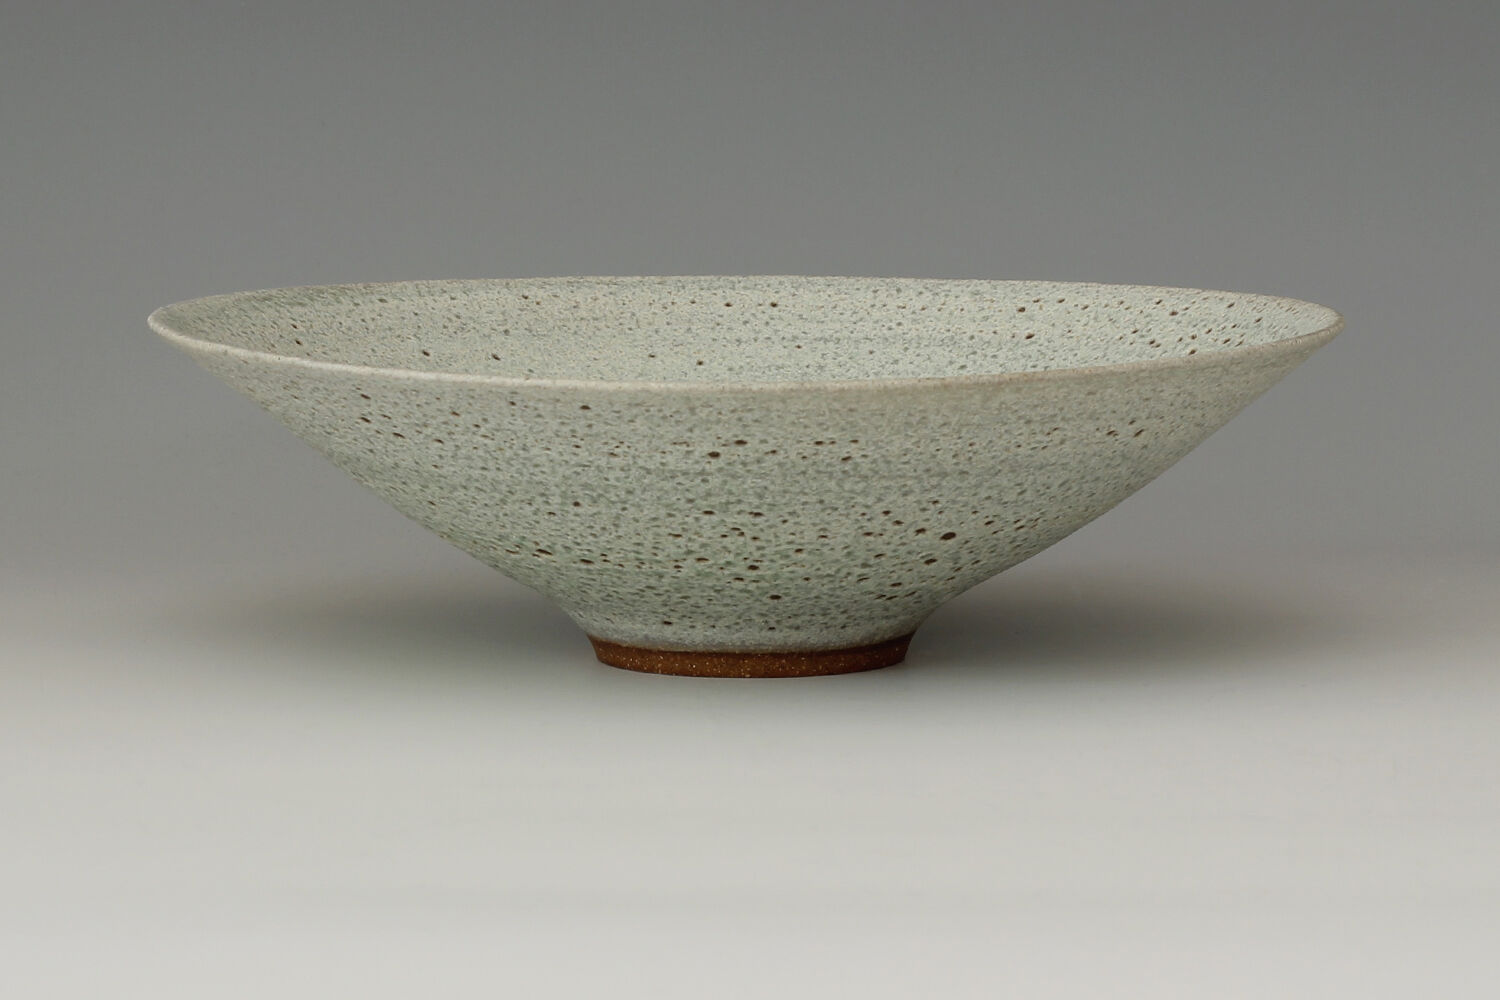 Peter Wills Ceramic Textured Pale Green Bowl 178